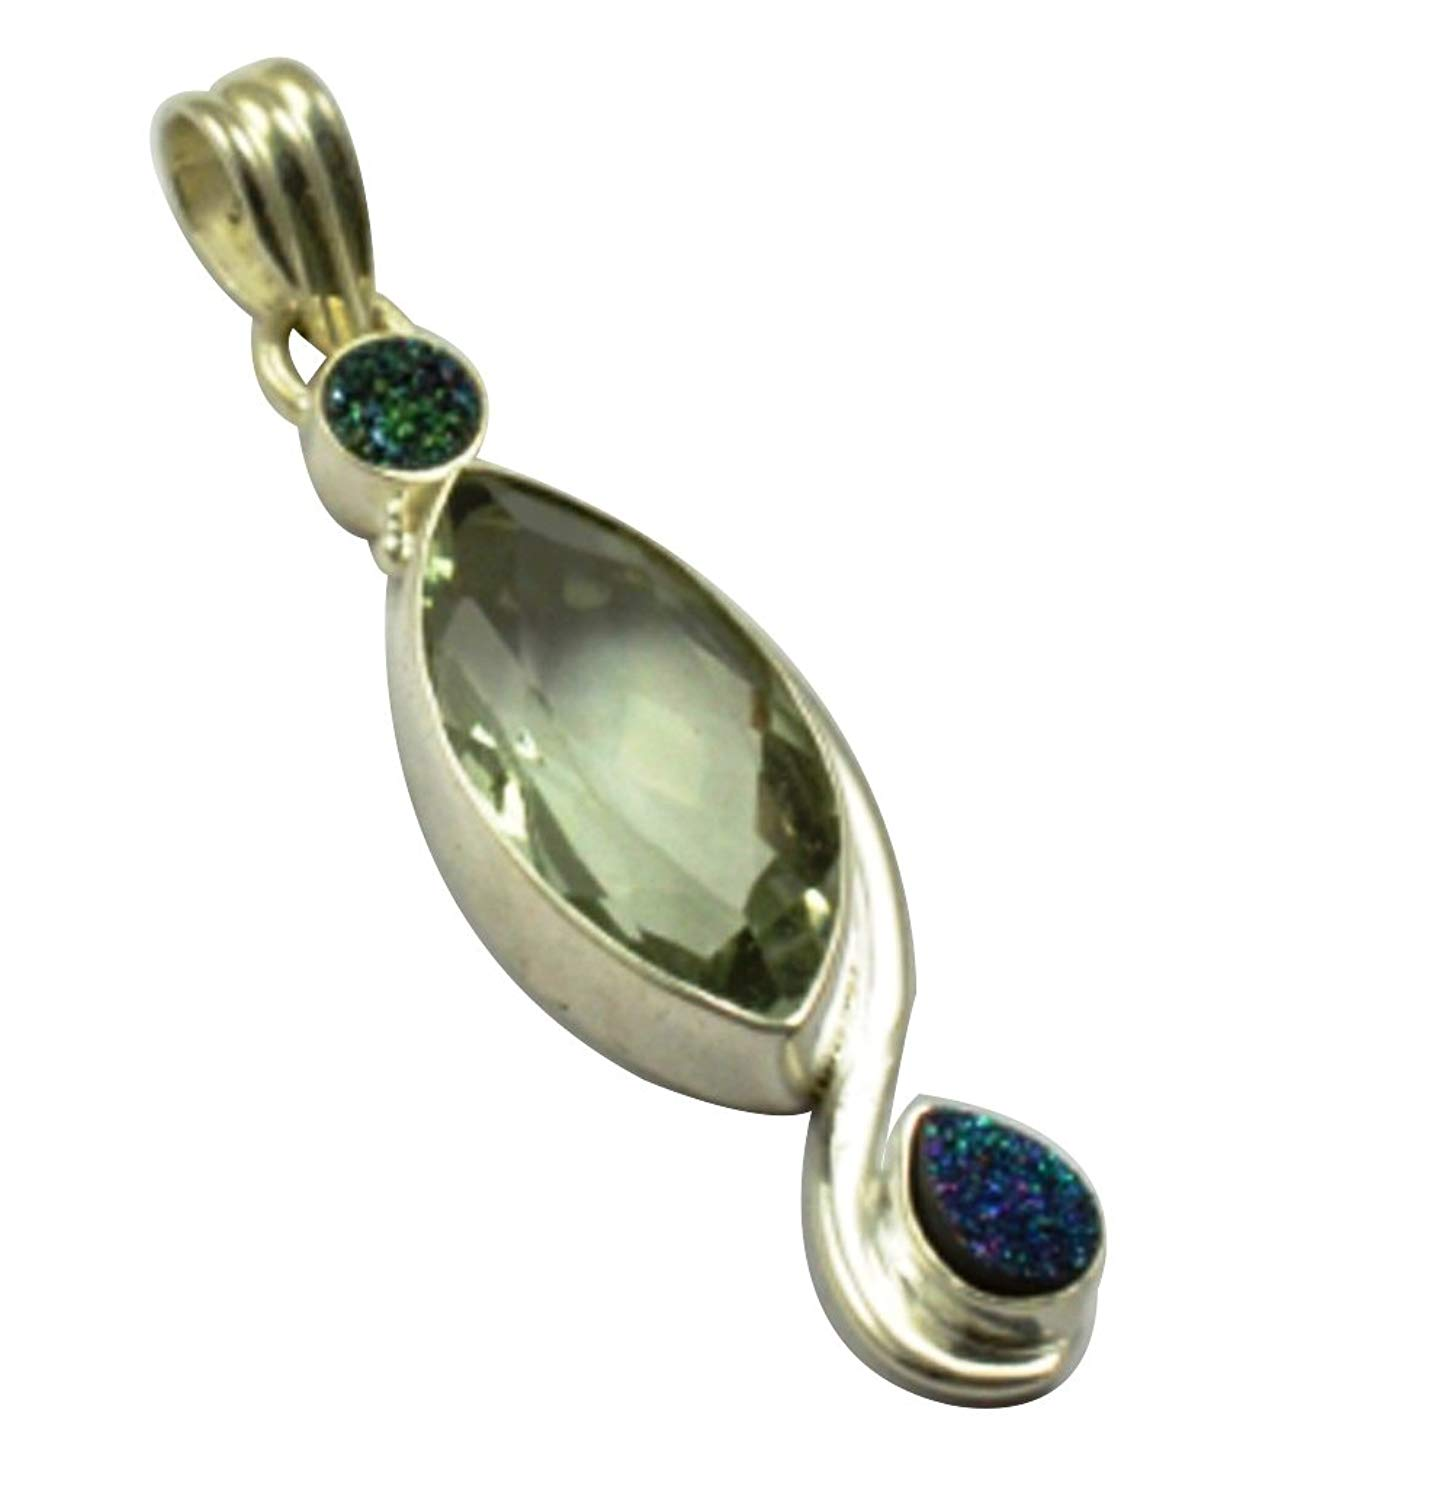 Lovegem Nature Green Amethyst & Druzy Pendant 925 Sterling Silver, 52.7 mm, MHBAP4908